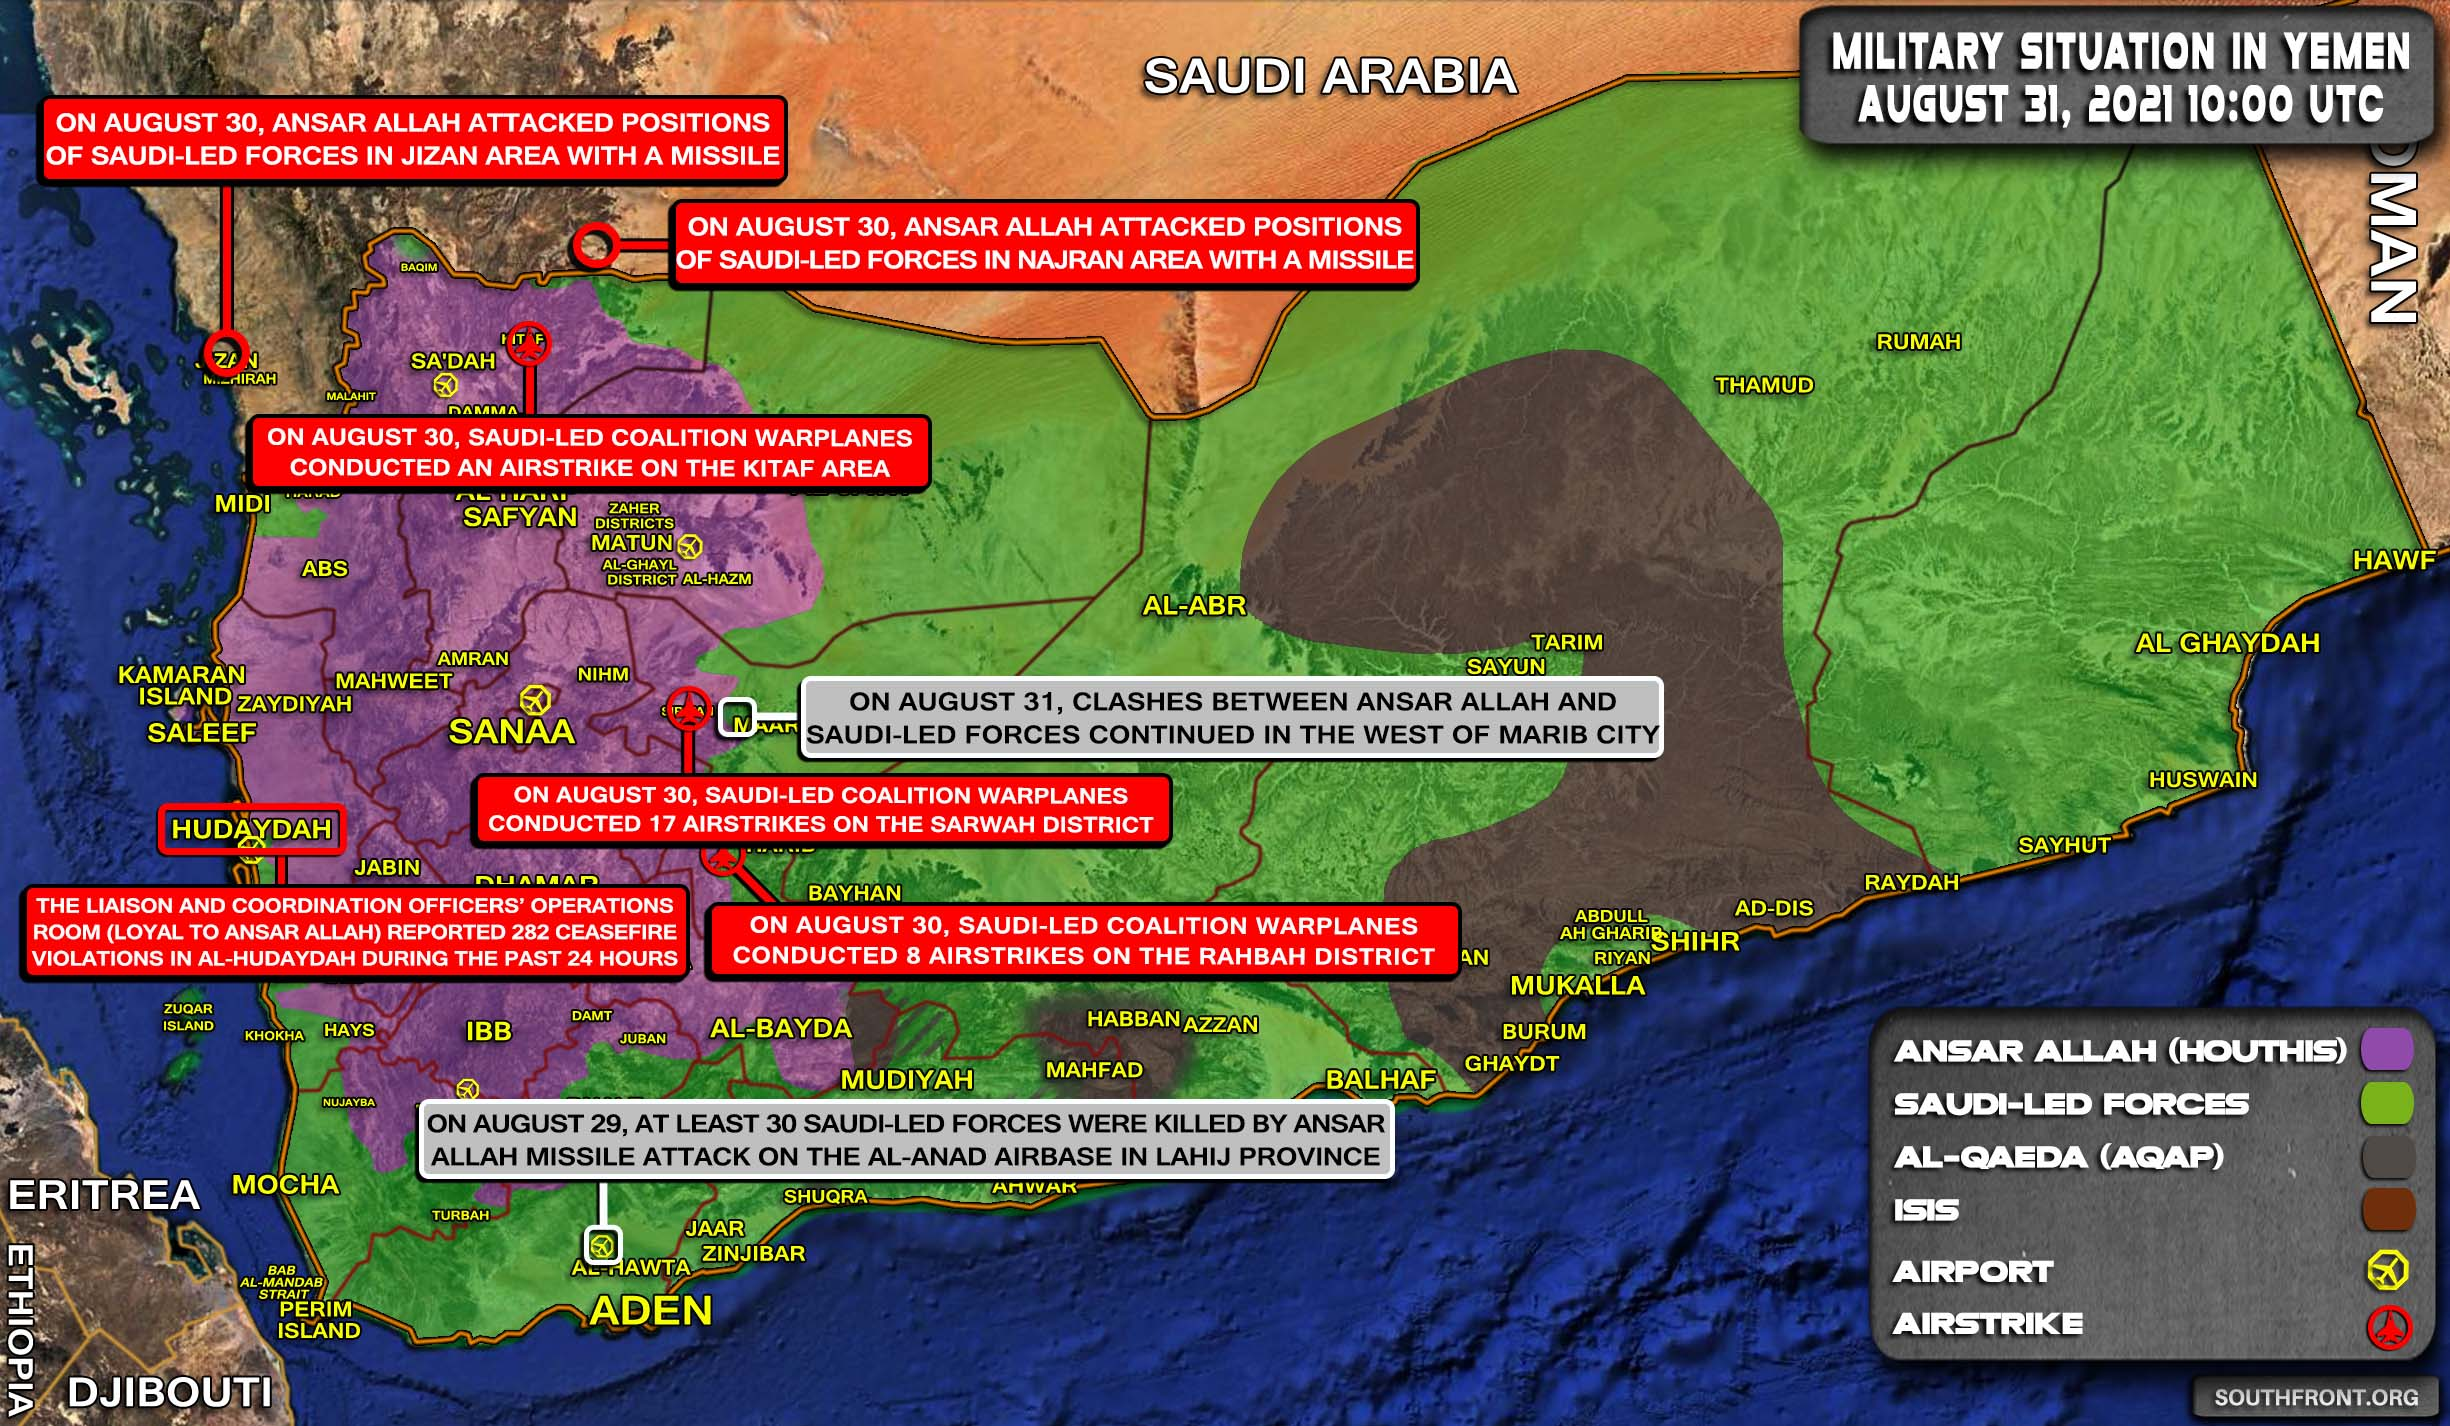 Hard Day For Saudi-Led Forces: Houthis Launched Several Attacks Both In Yemen And Saudi Arabia